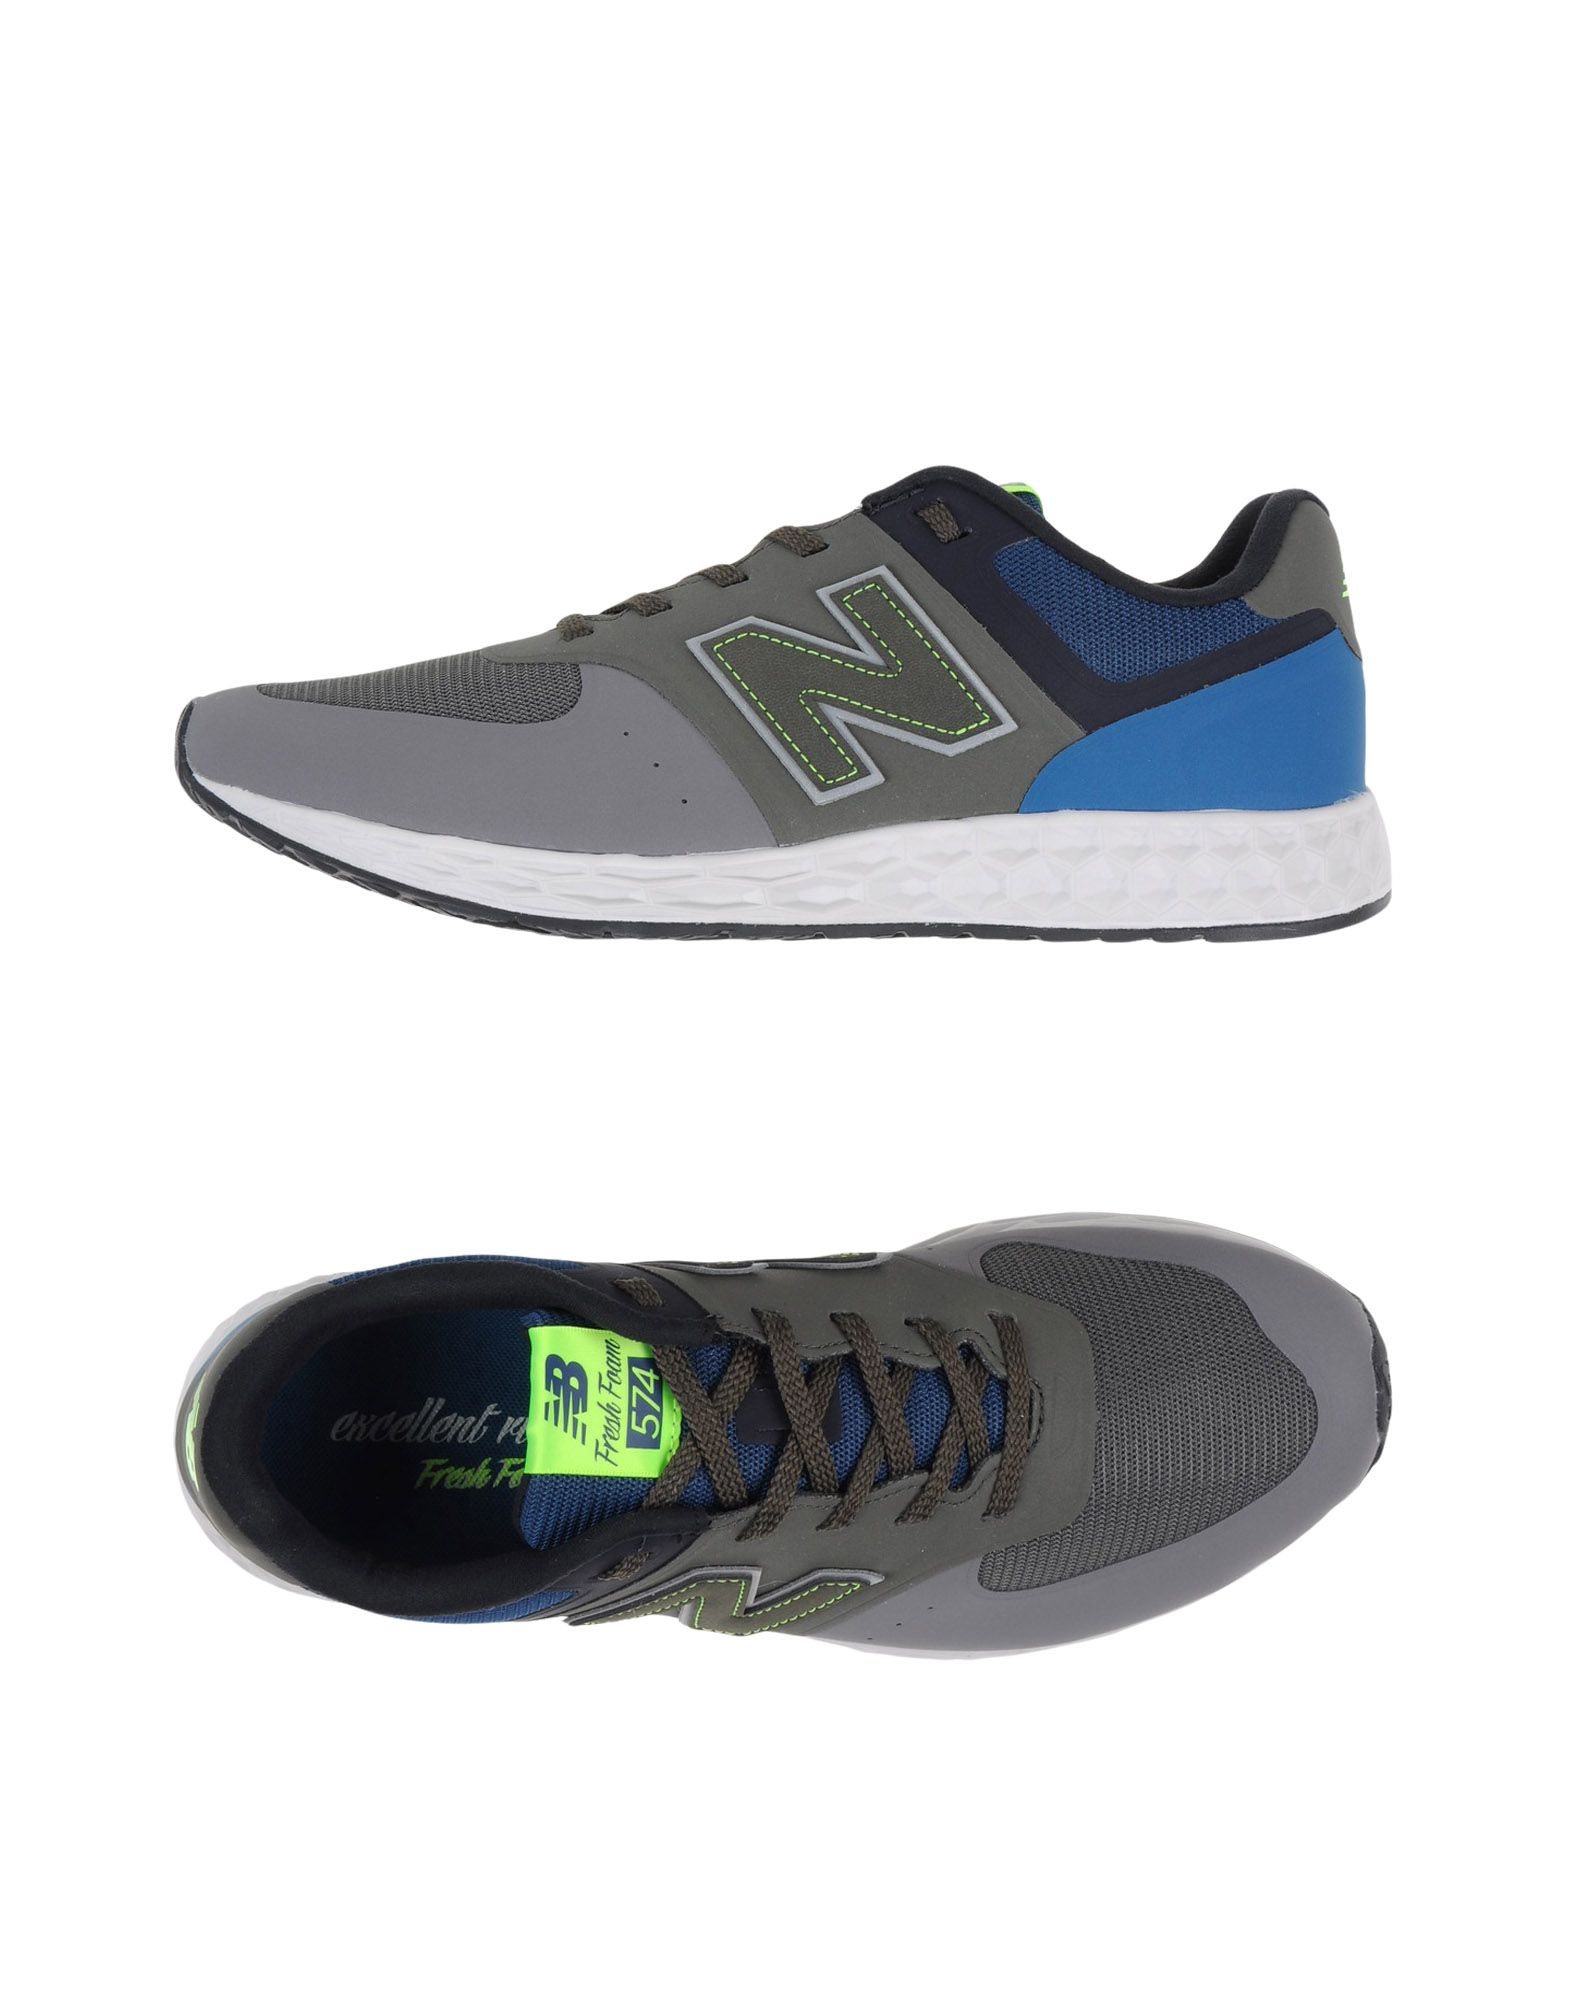 New Balance 574 Fresh Foam - Sneakers - Men on New Balance Sneakers online on Men  Canada - 44993837QW 420733